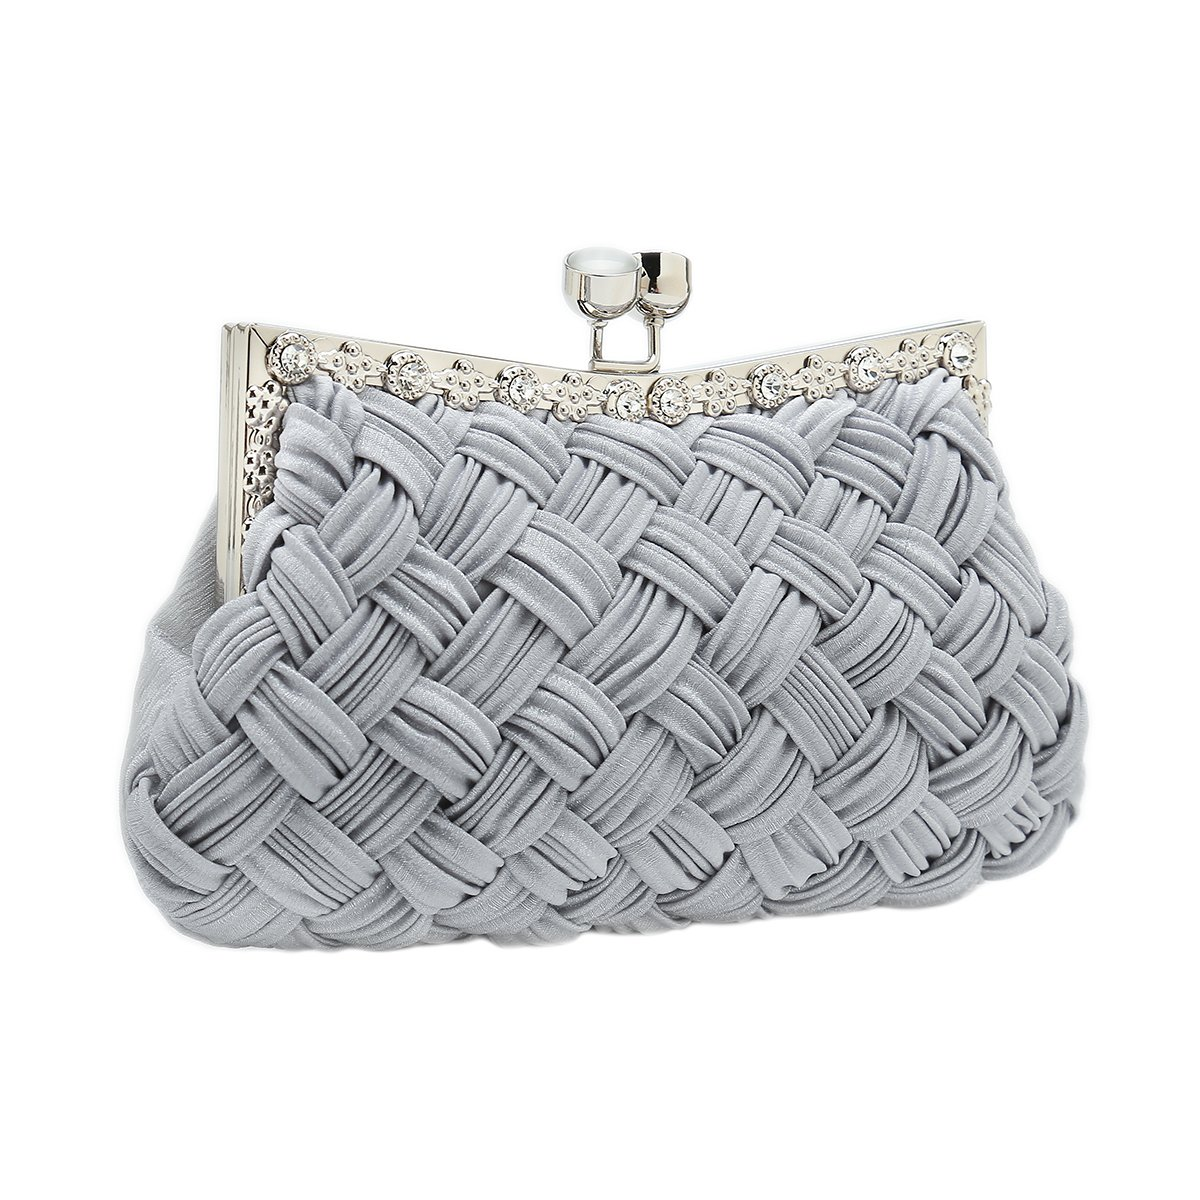 Charming Tailor Evening Bag Women Classic Clutch Woven Wedding Party Purse (Grey)